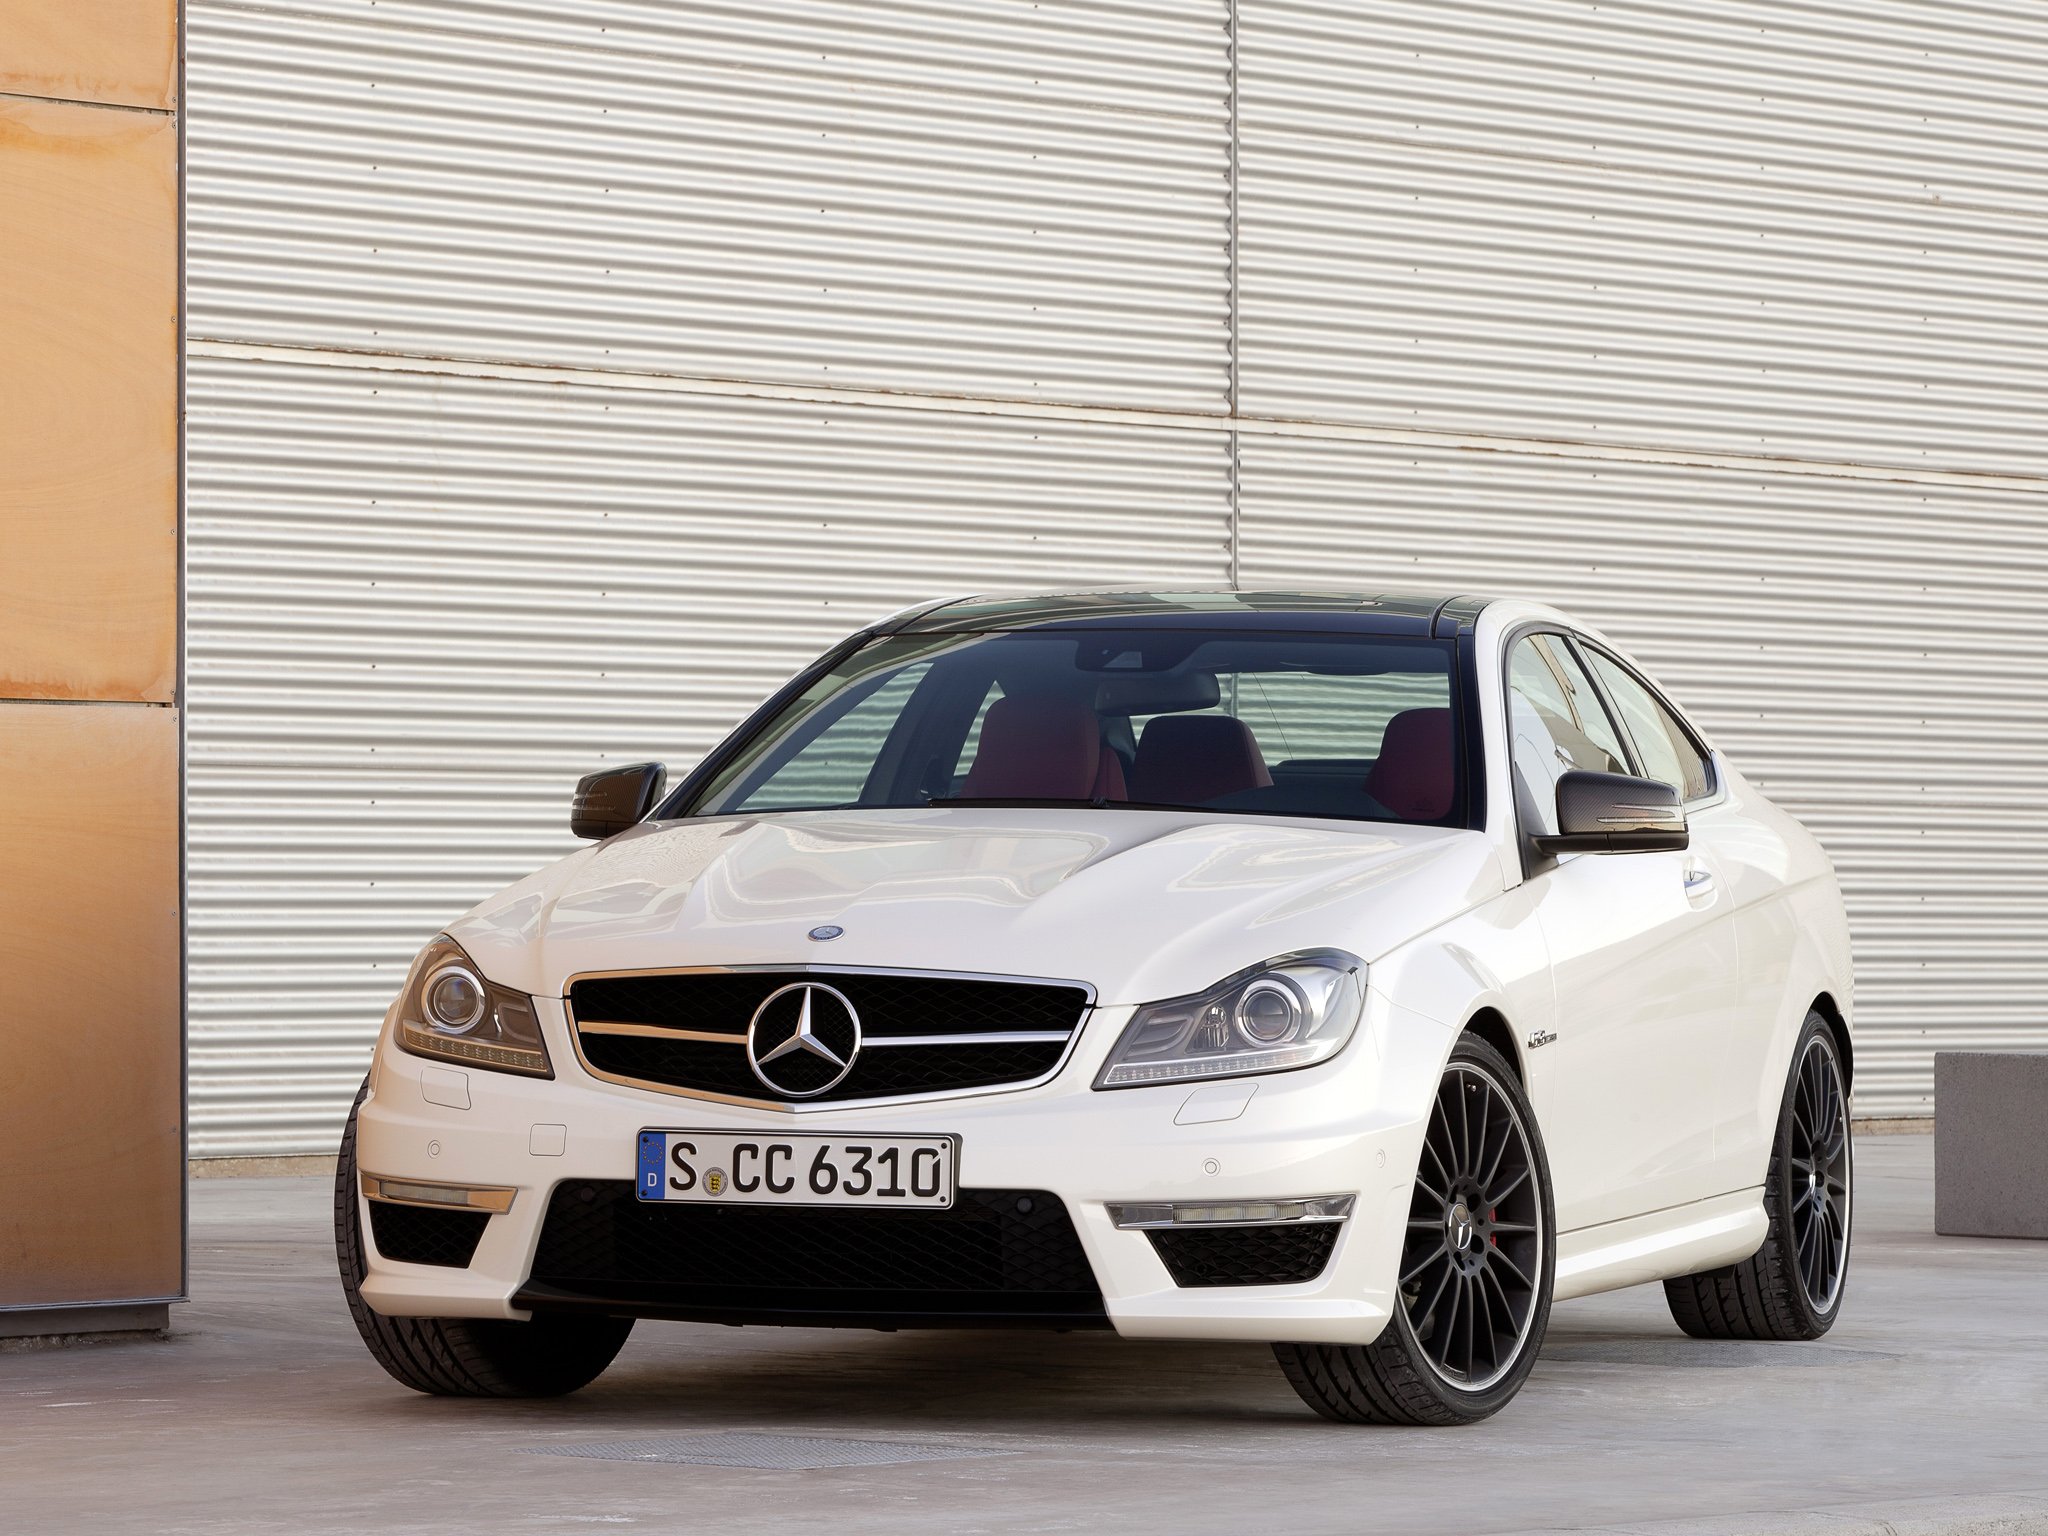 Mercedes-Benz C-klasse AMG III (W204) Restyling 2011 - 2015 Coupe #7